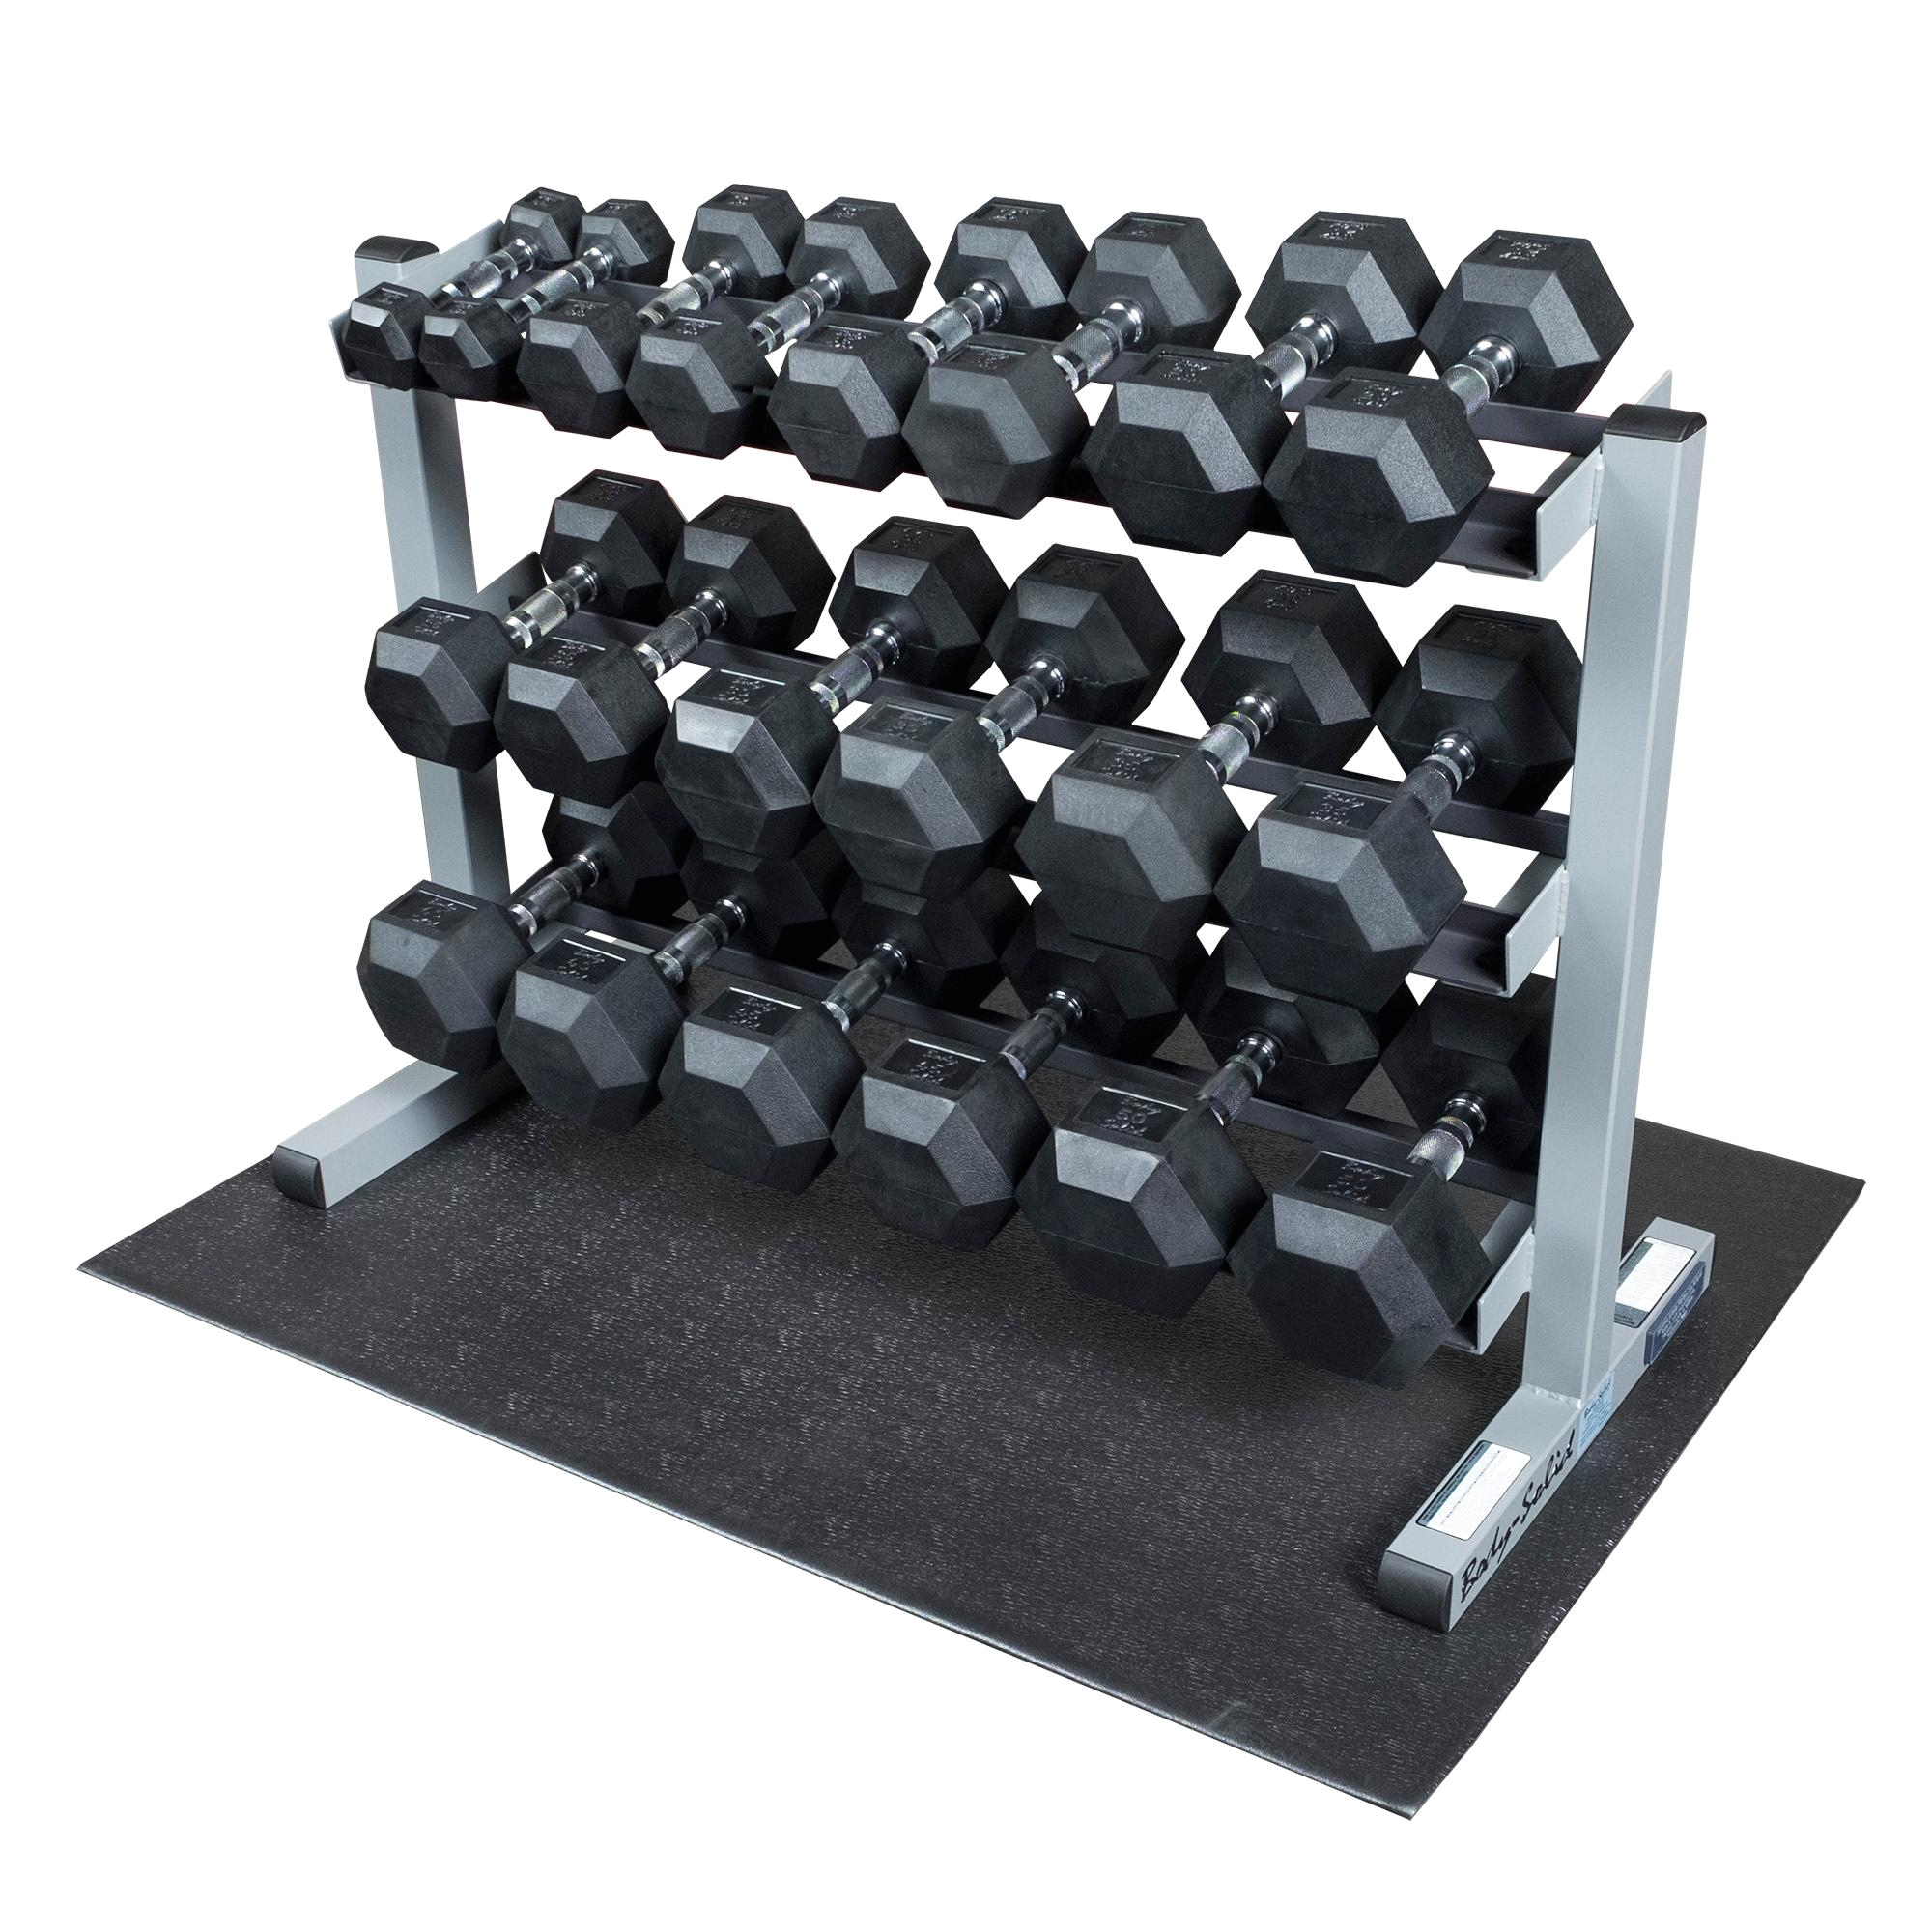 Body Vision Weight Bench Amazon Com Body solid Gdr363 Rfws Dumbbell Rack with Rubber